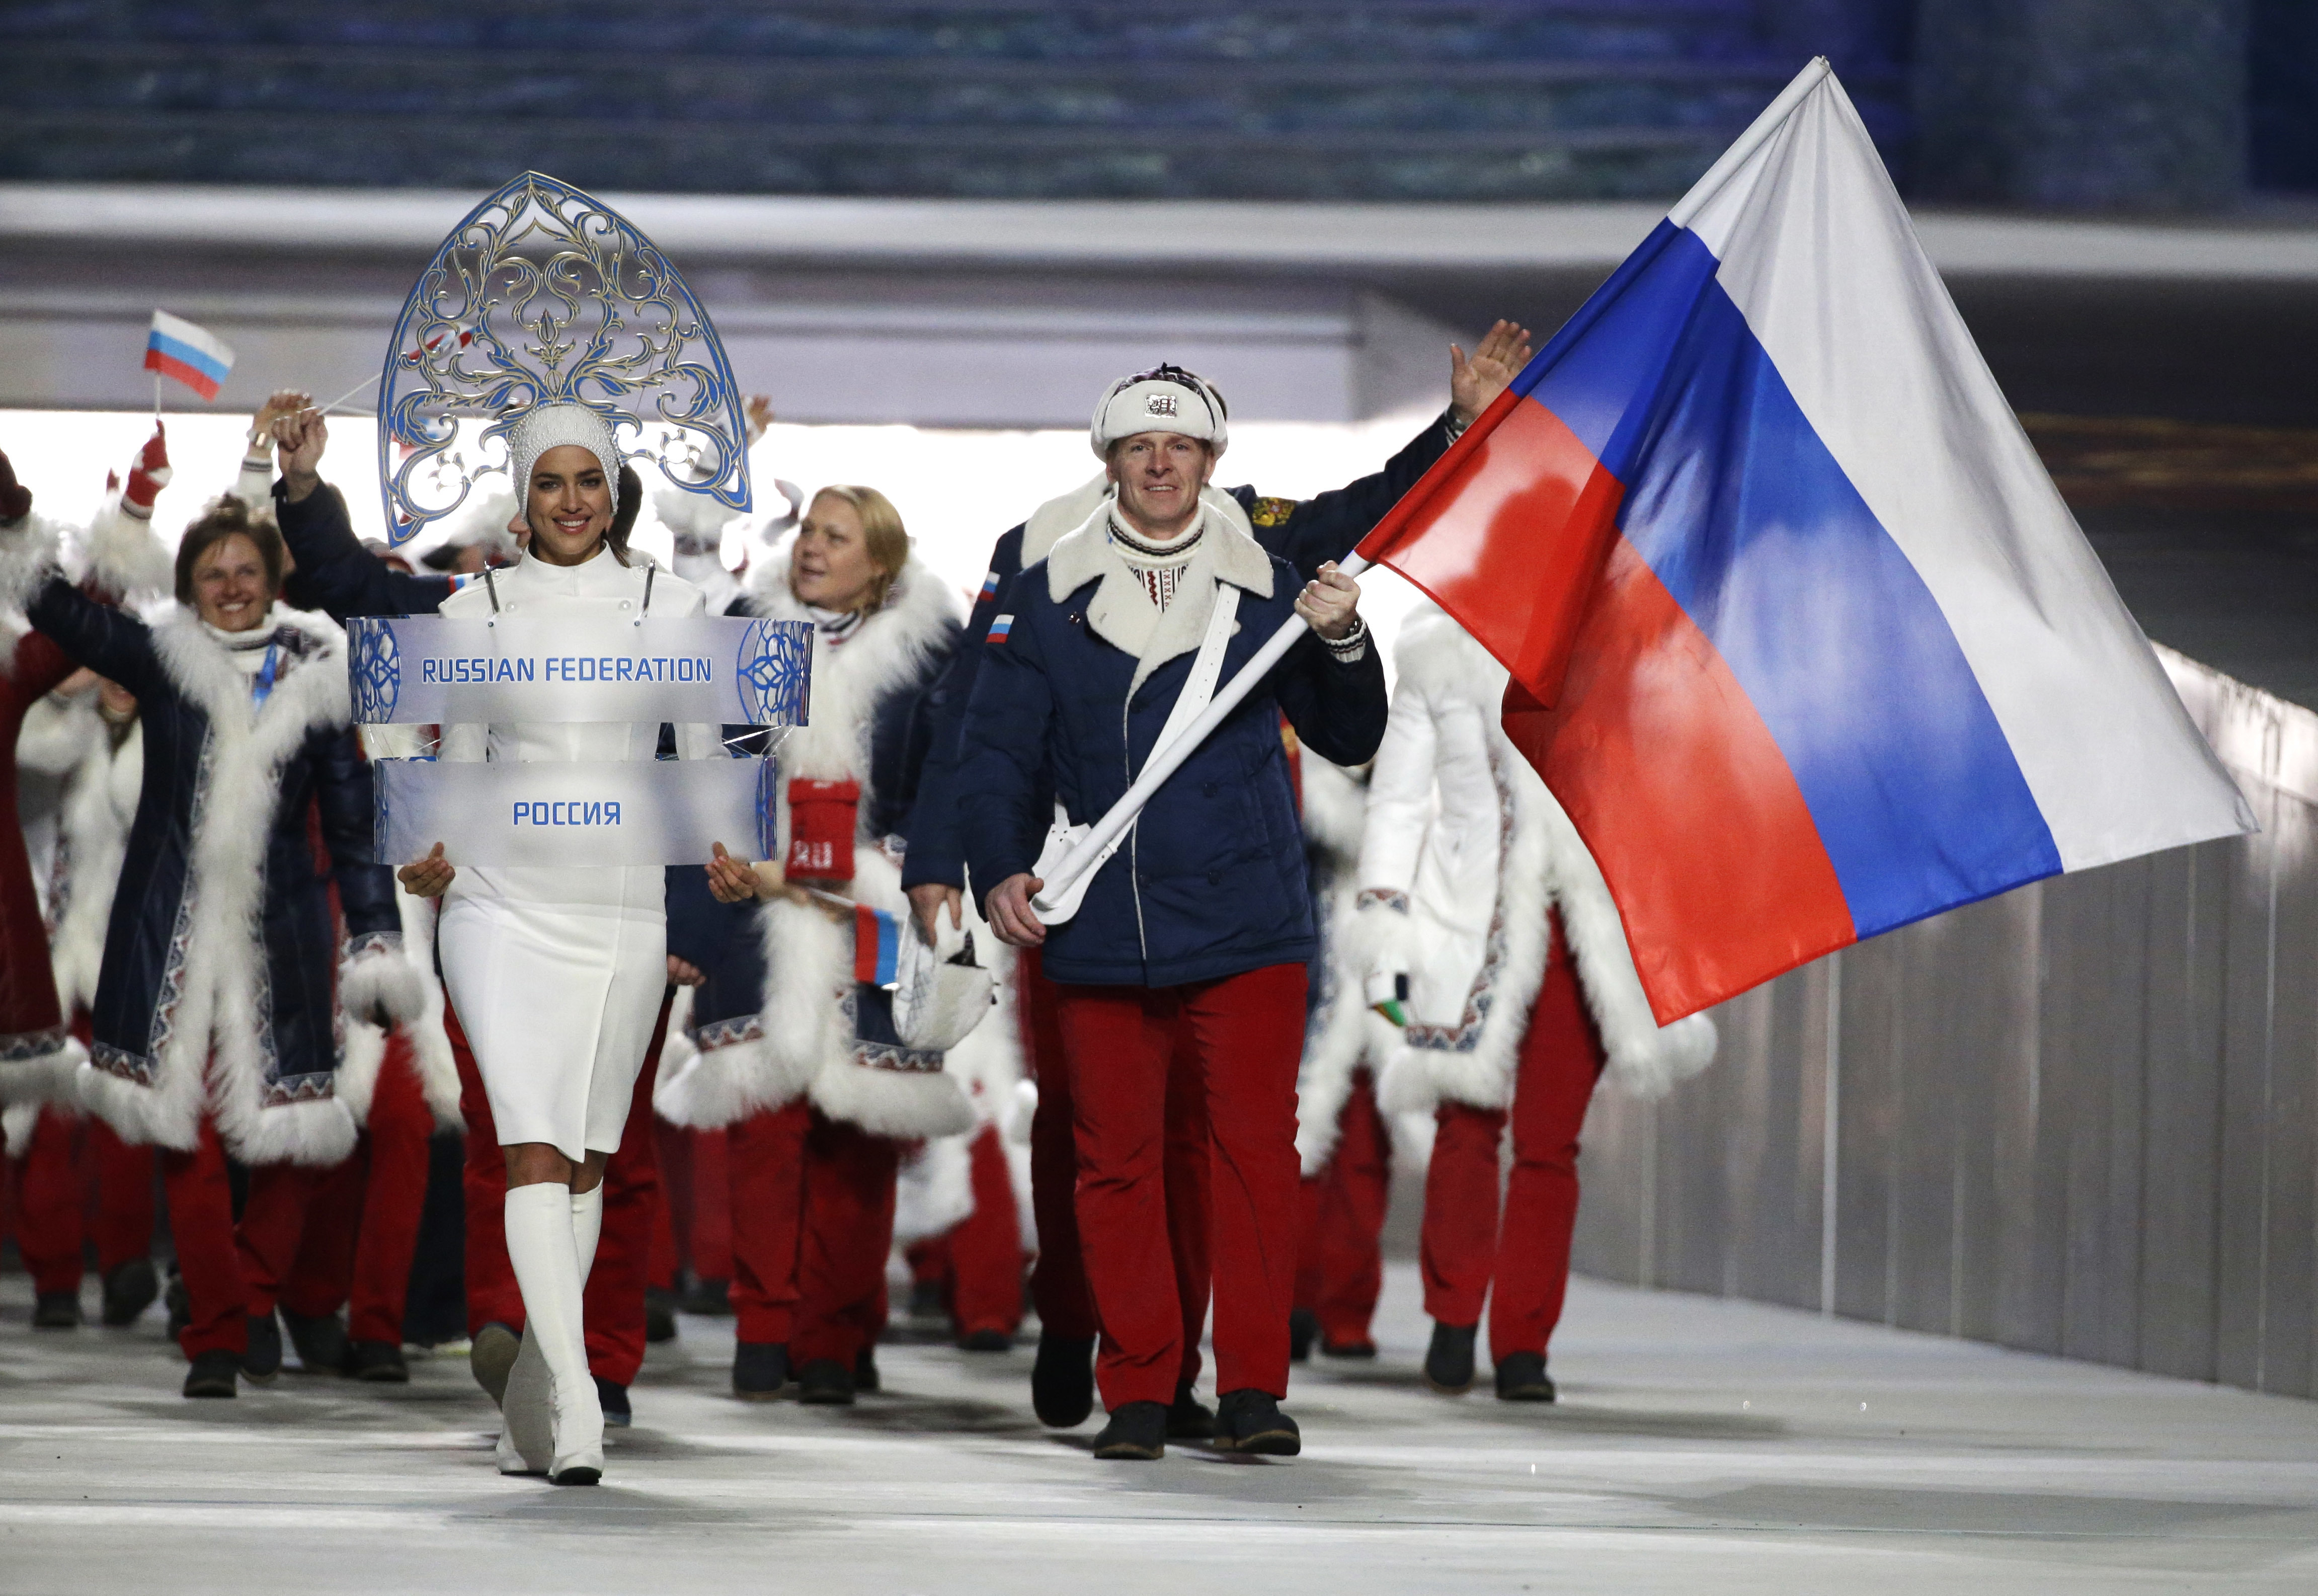 Russia hit with 4-year Olympics ban by World Anti-Doping Agency